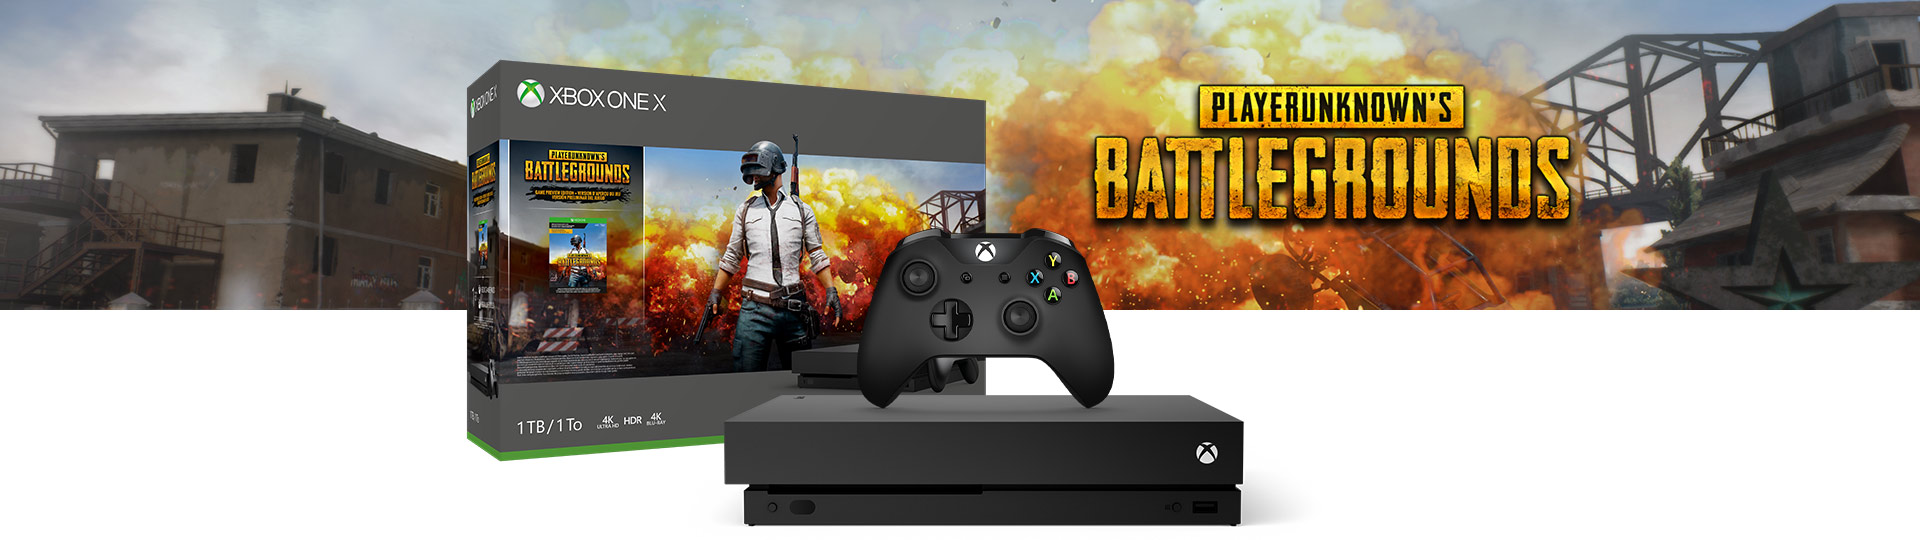 Xbox One X and Controller next to the Xbox One X PlayerUnknowns Battlegrounds 1 terabyte product box